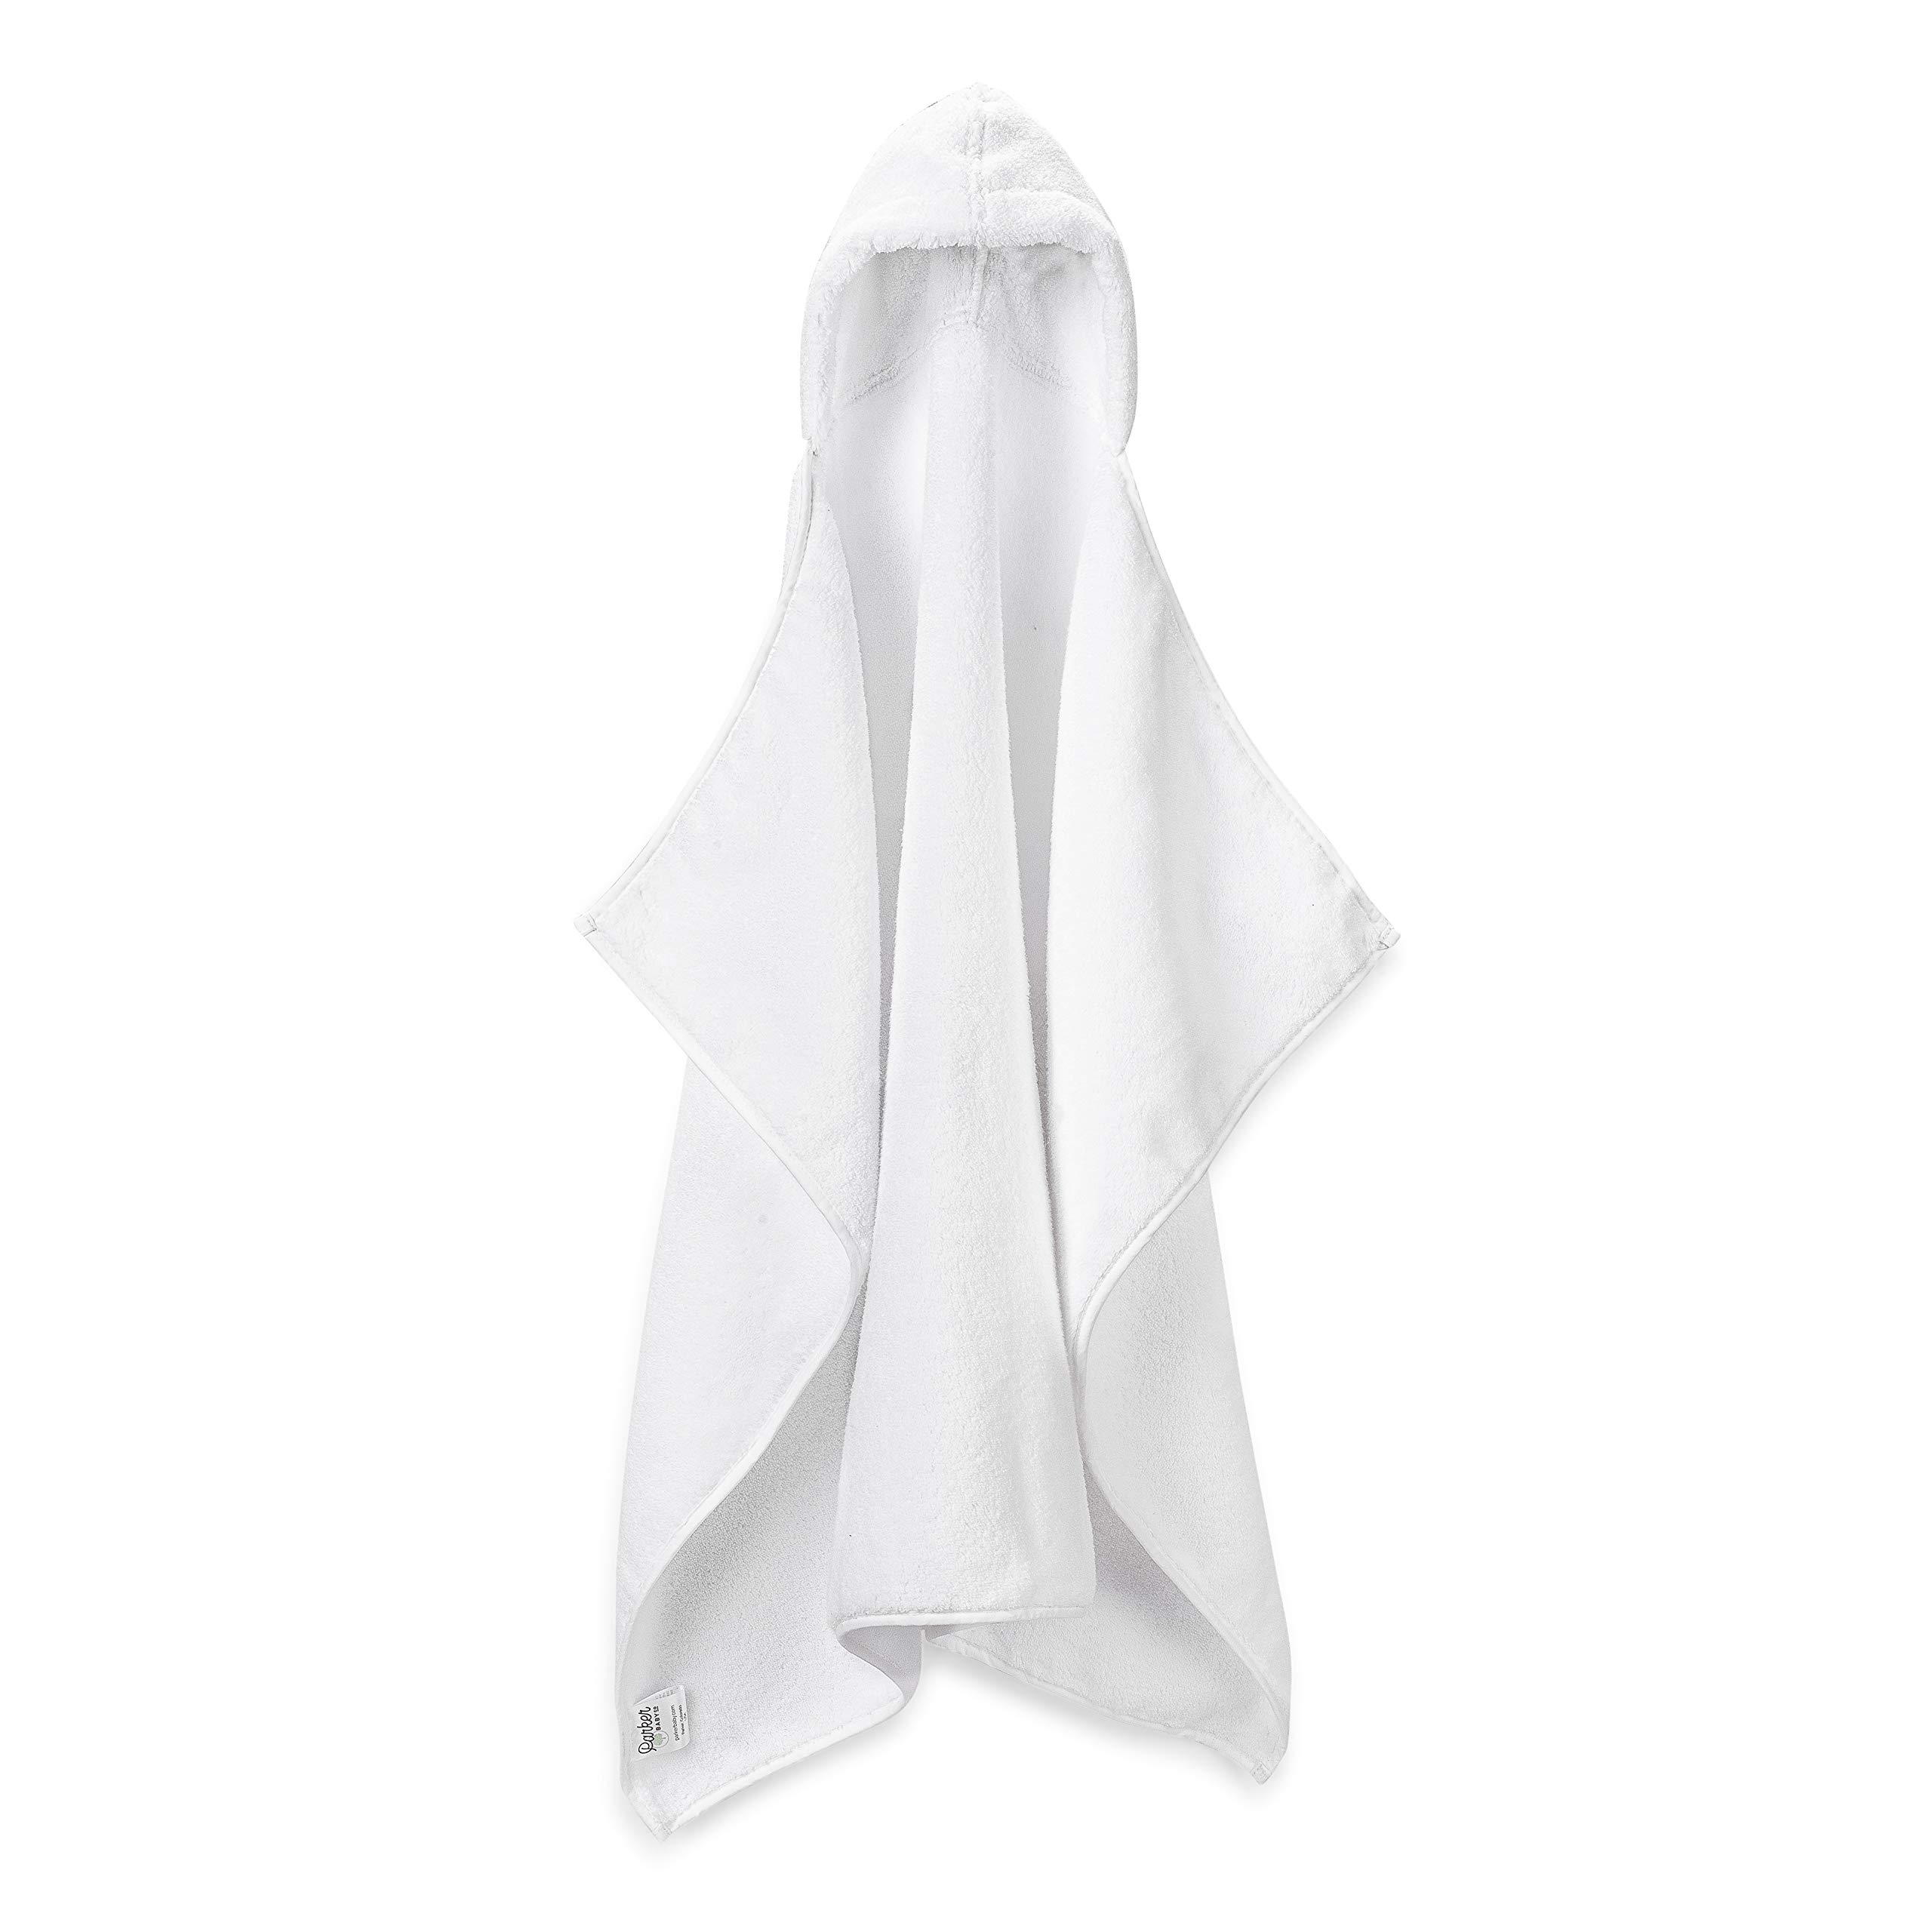 Premium 100% Soft Ring Spun Cotton Hooded Toddler and Kid Bath Towel by Parker Baby Co. (Toddler/Kids) by Parker Baby Co.